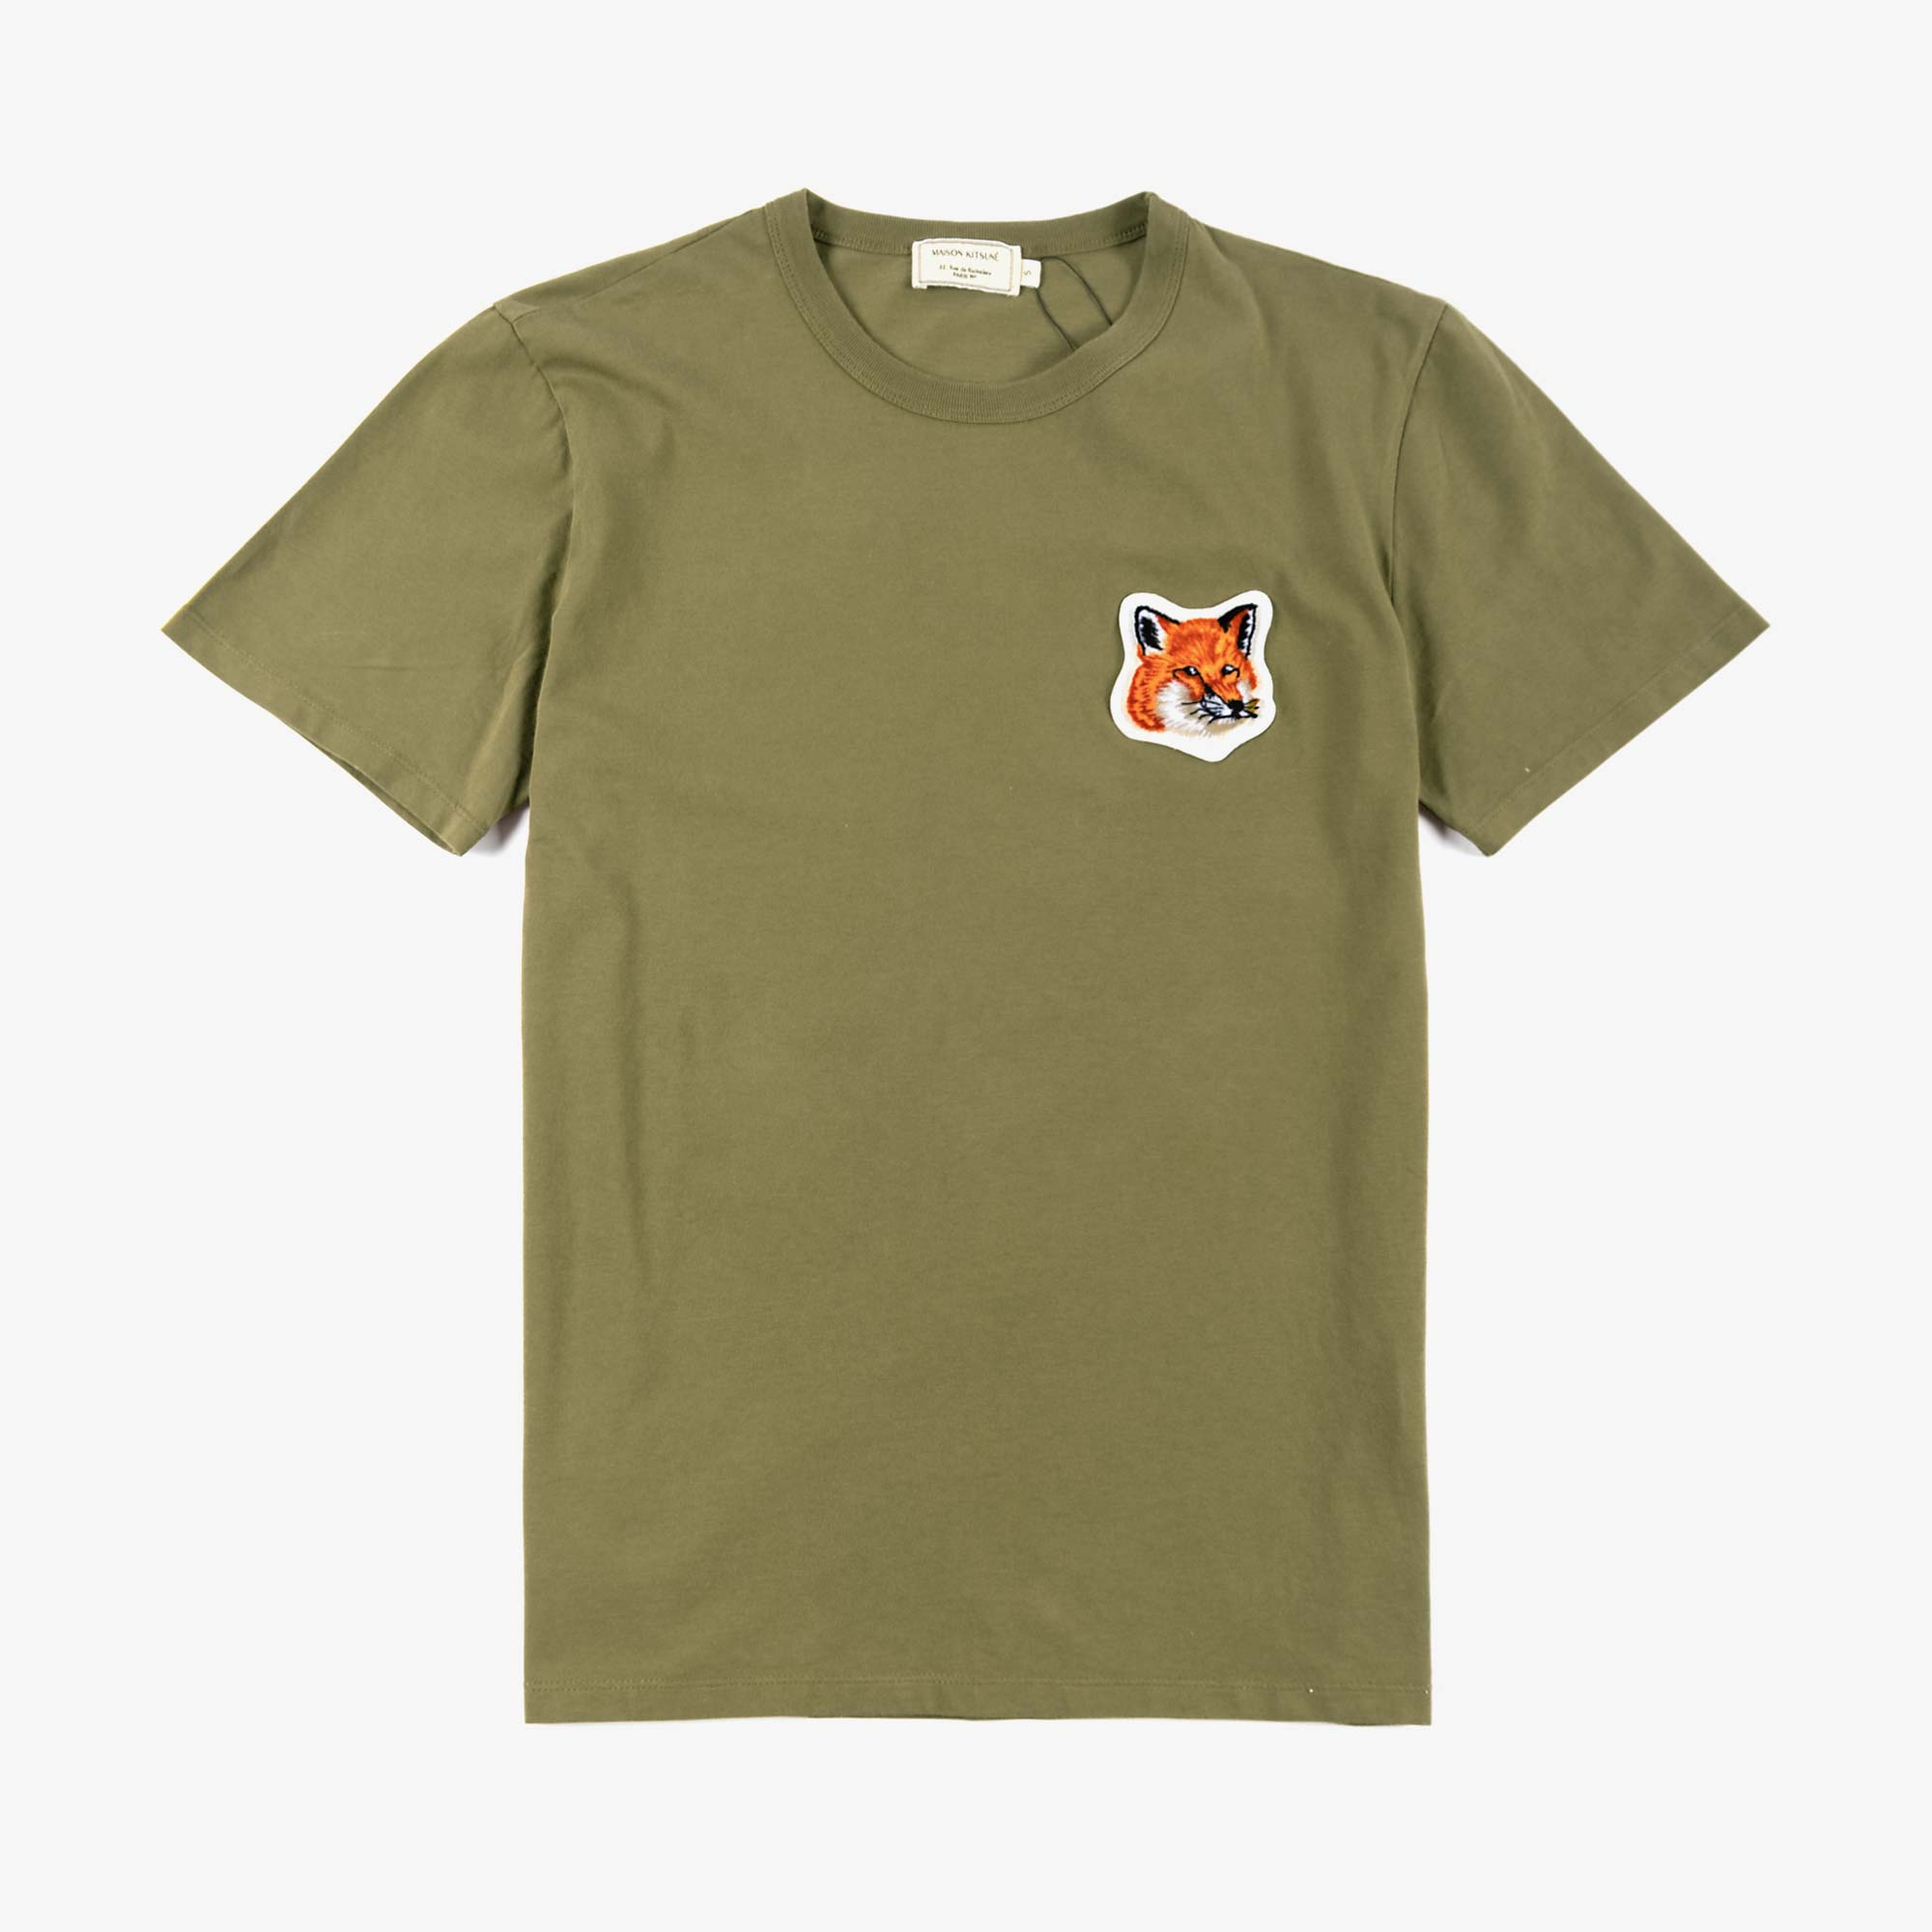 Maison Kitsune Men's Velvet Fox Head Patch Tee - Khaki 1